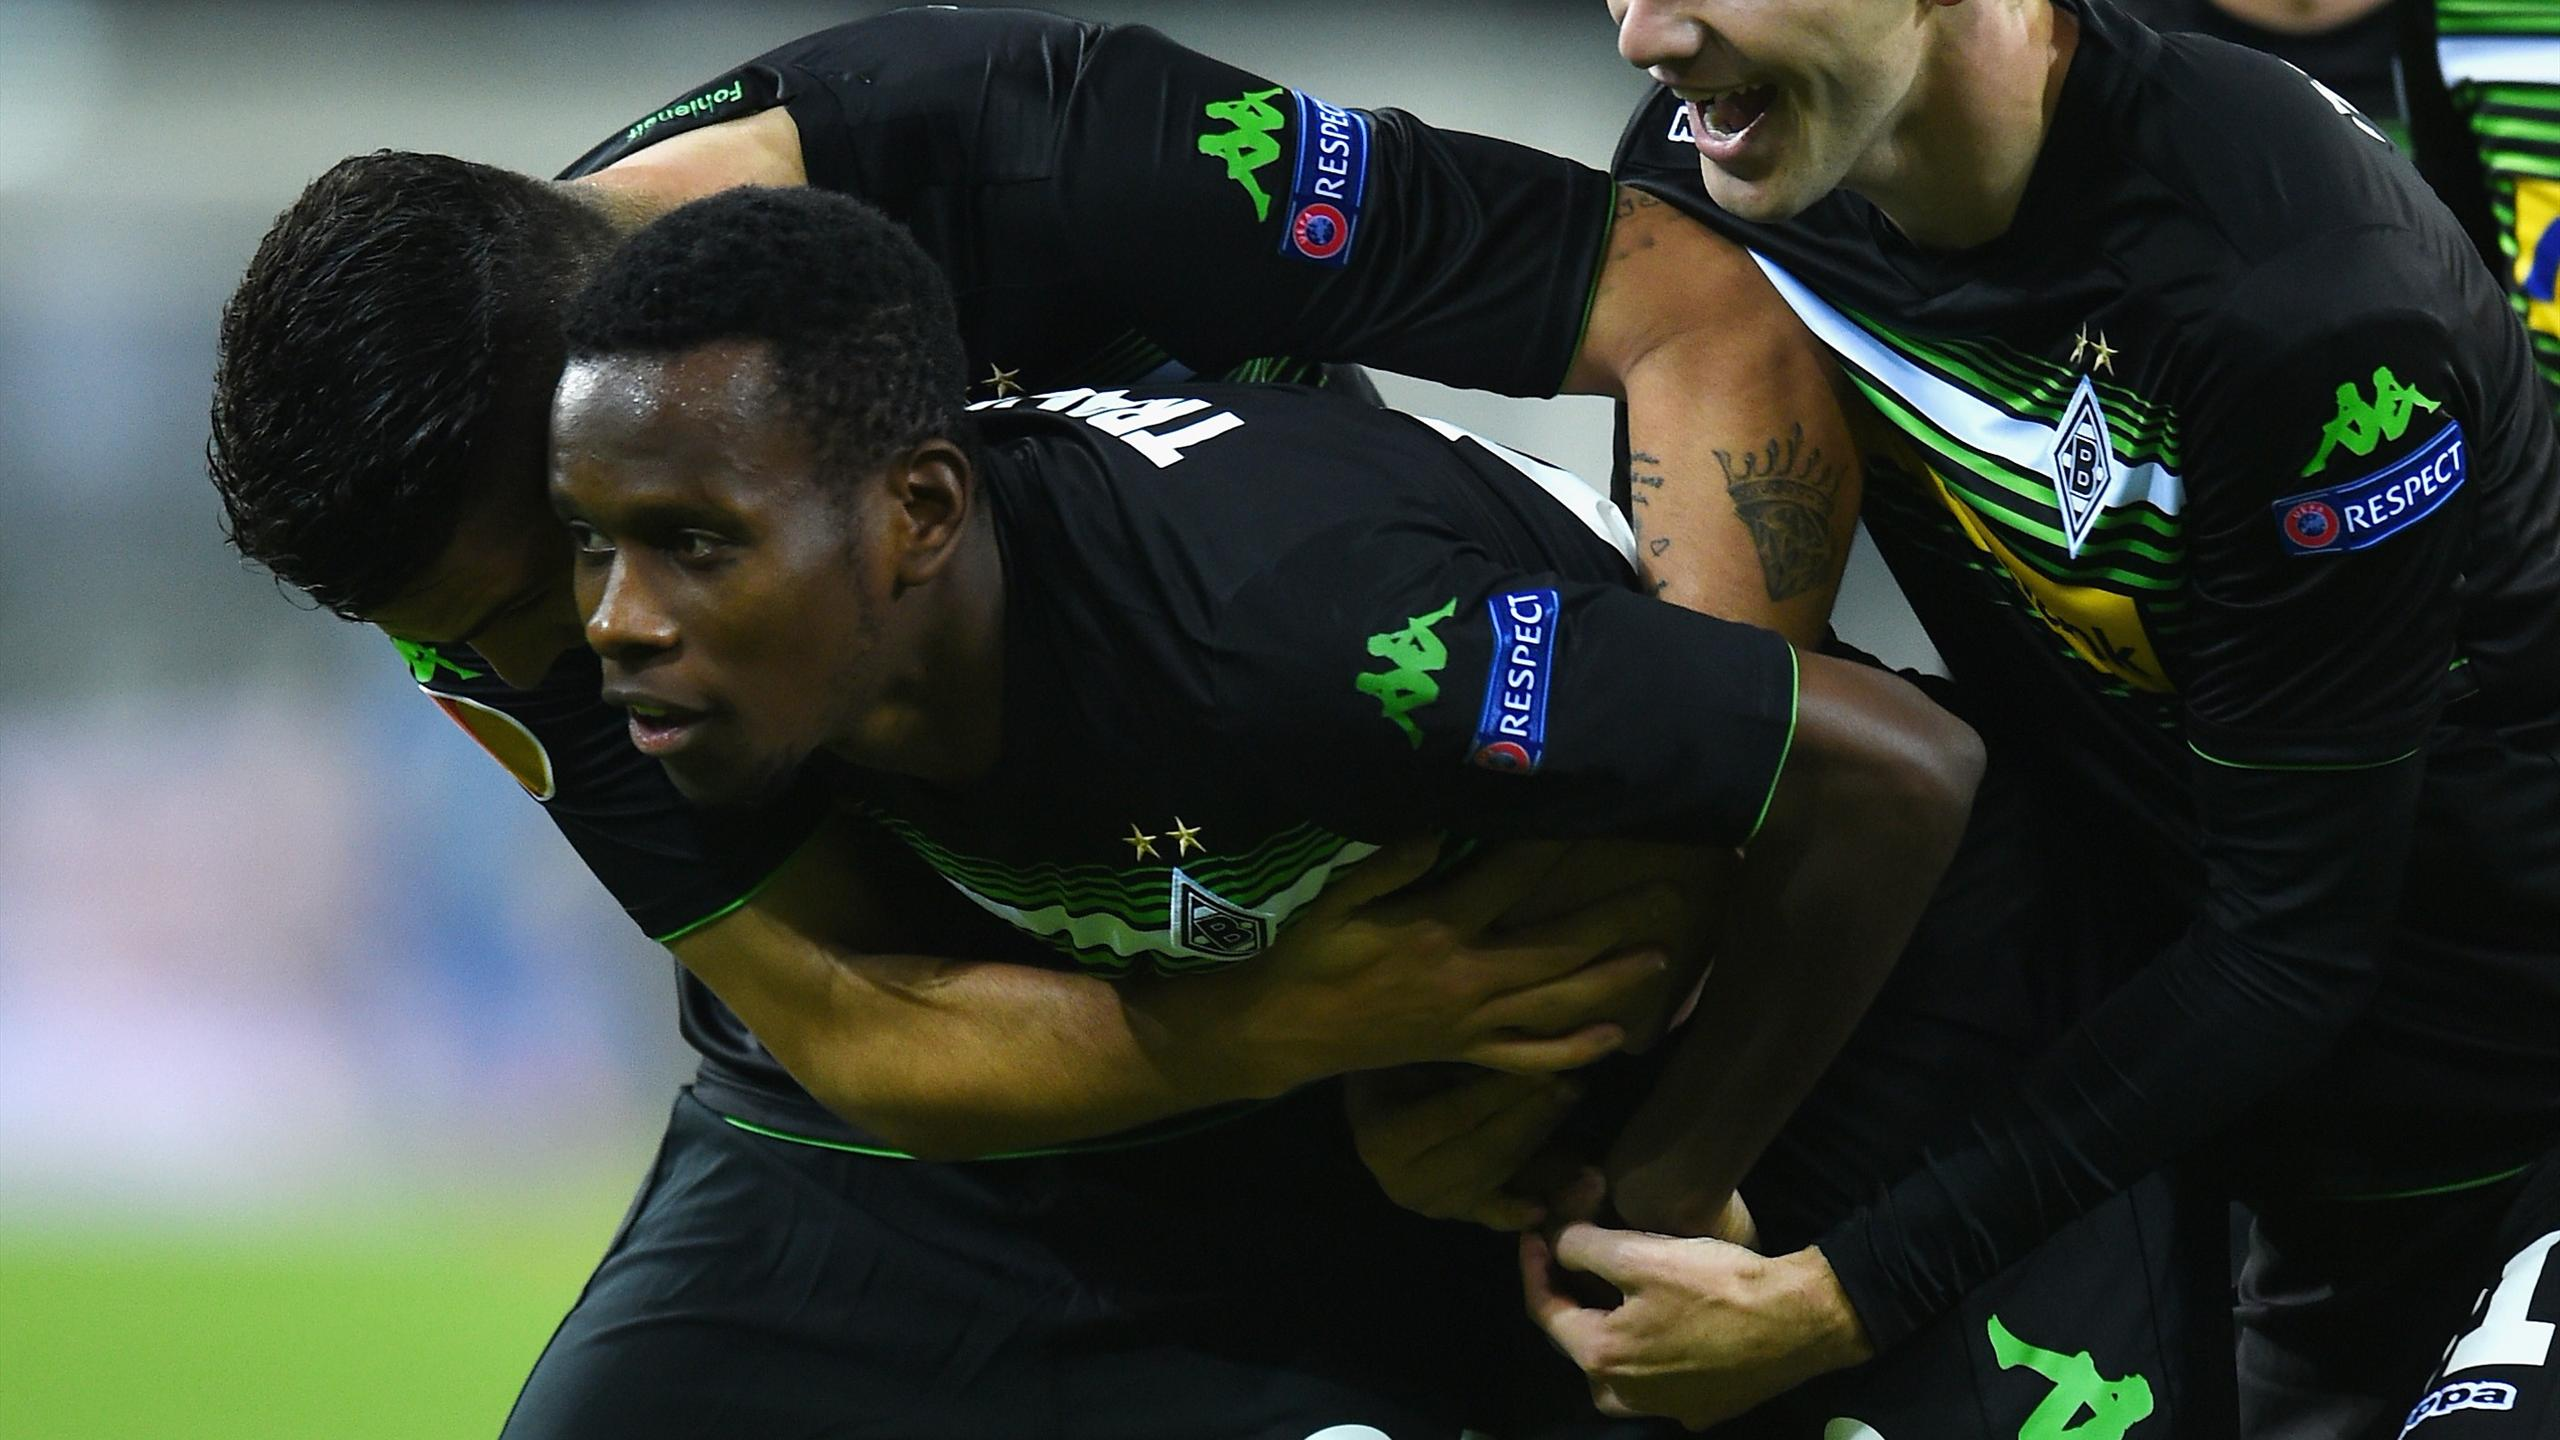 Video: Borussia M gladbach vs Apollon